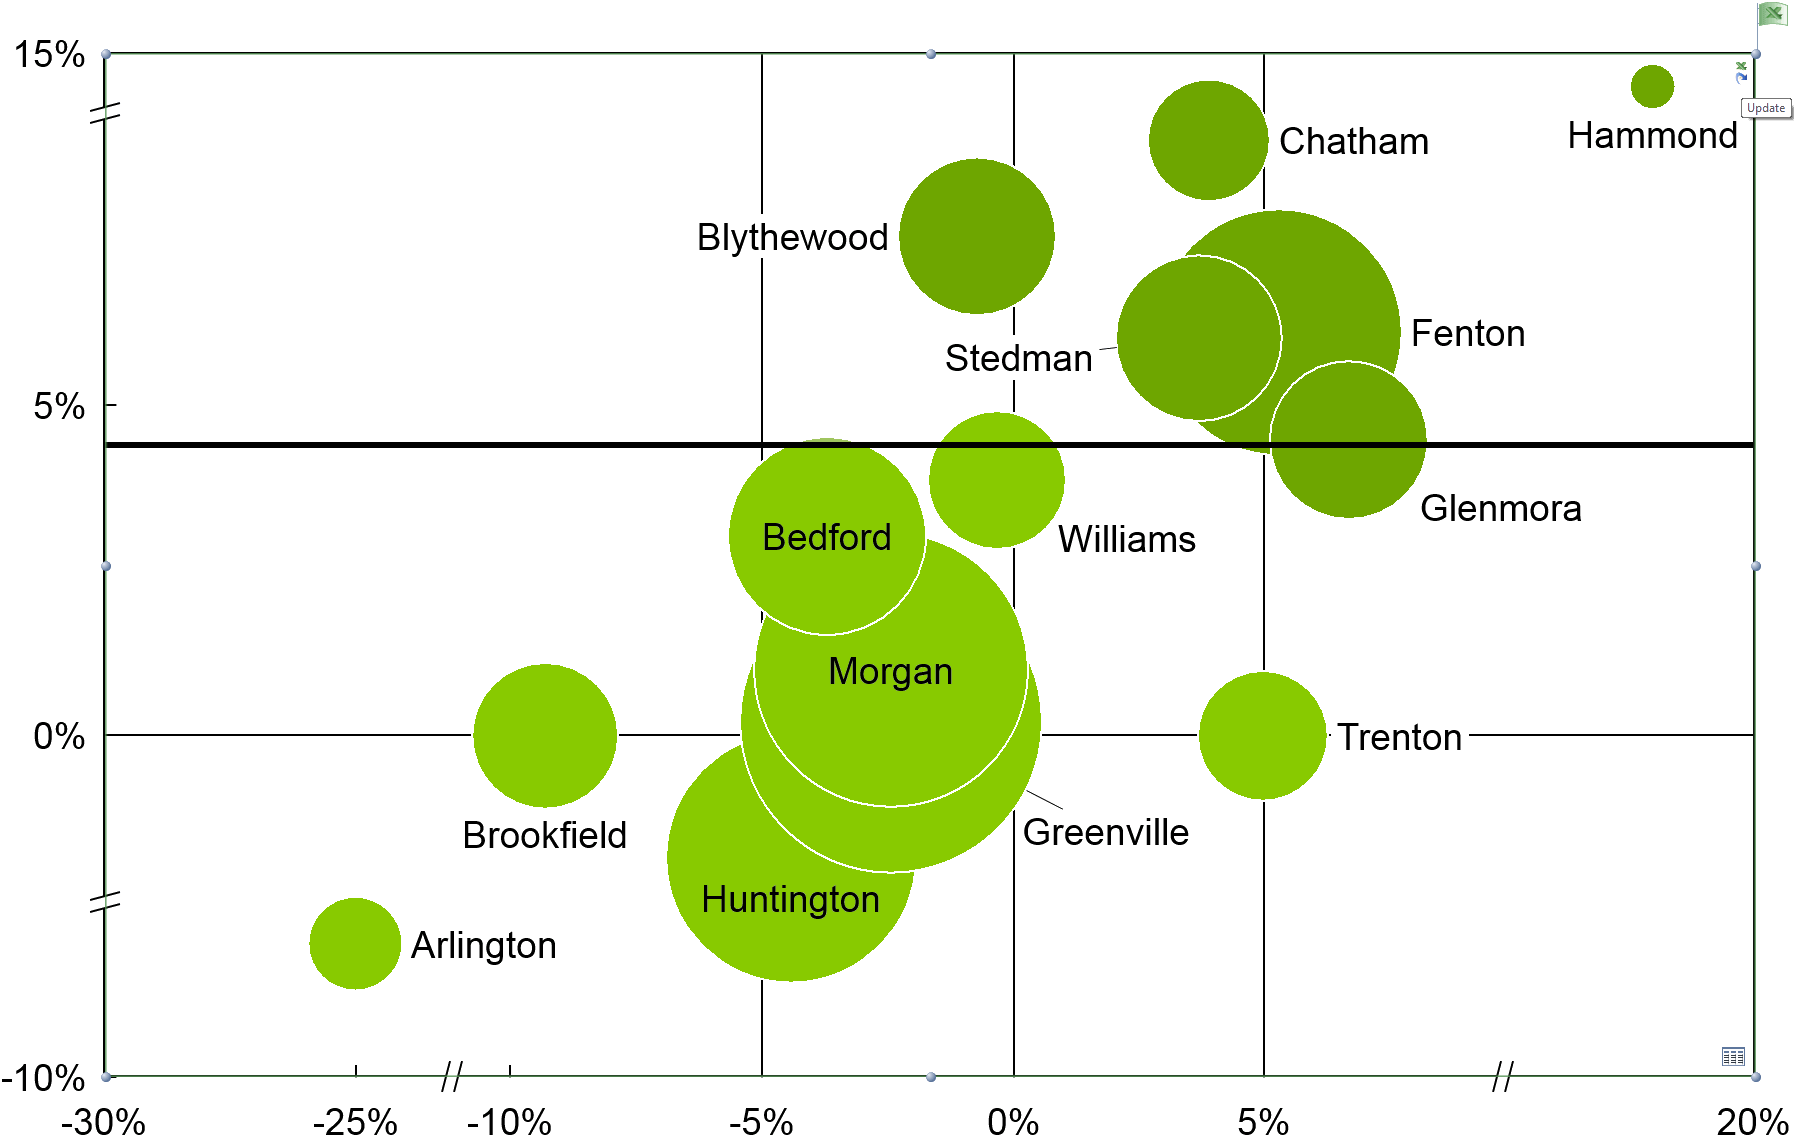 Bubble chart linked to data